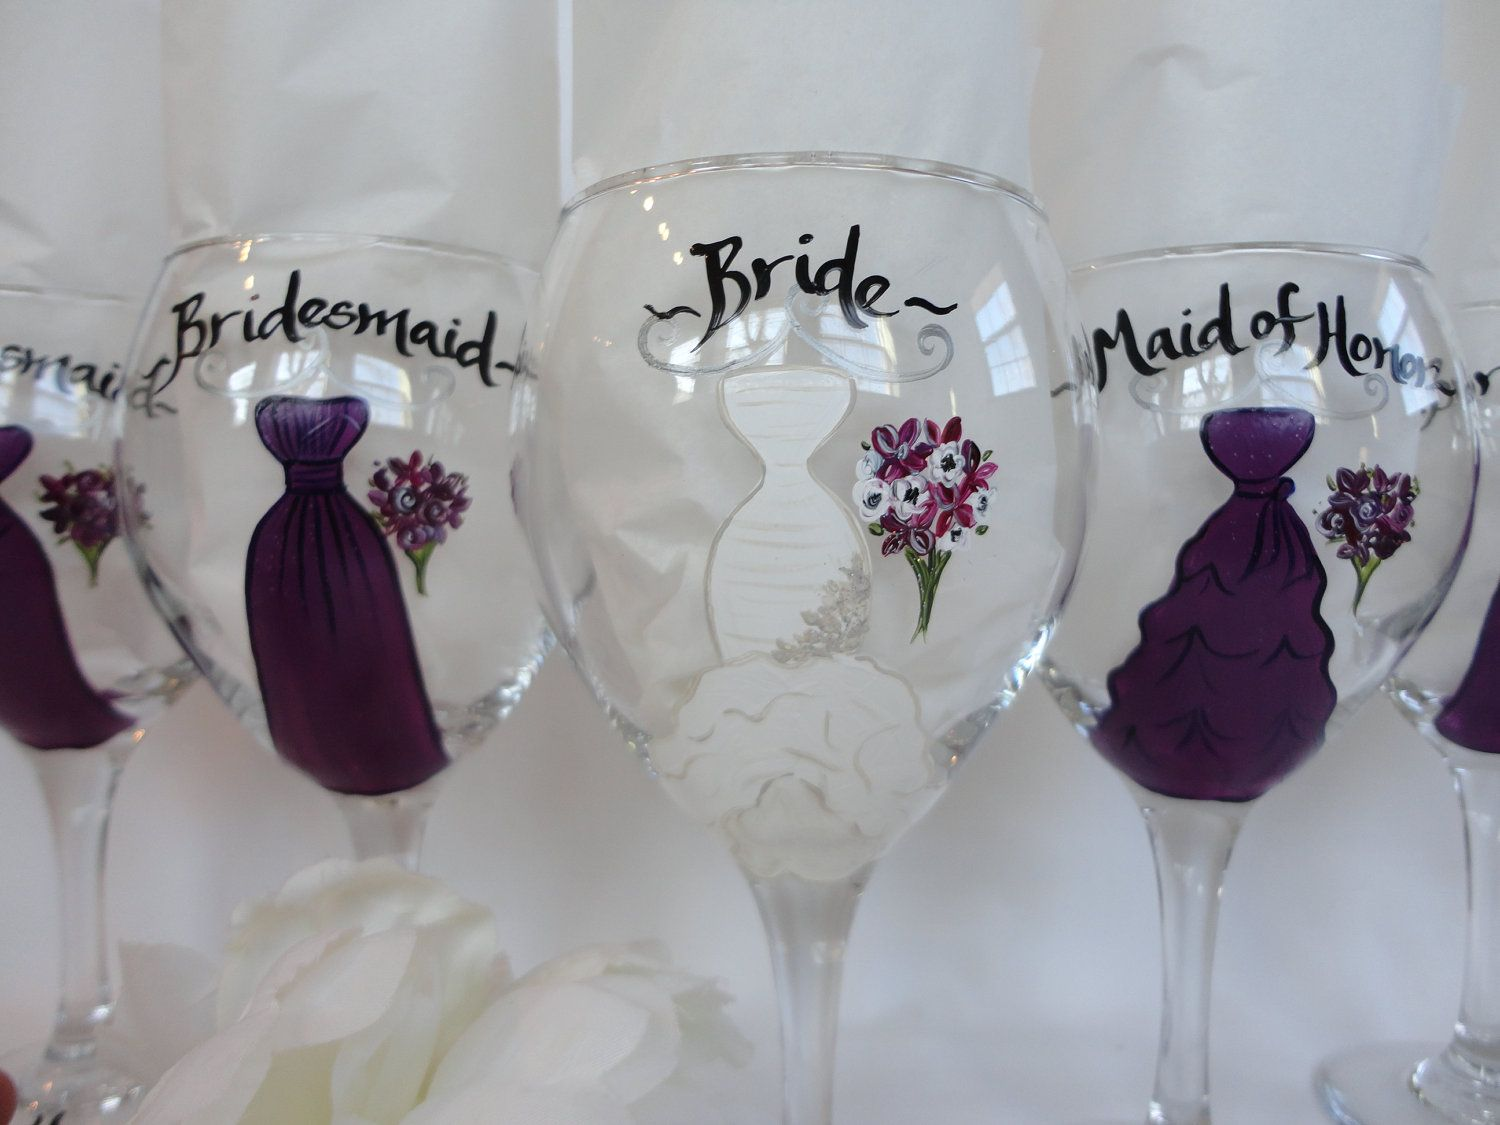 042a8d603d8 Personalized Hand Painted Bridesmaid Dress Wine Glasses - CUSTOM DRESS  STYLE -Gift Wrapping Available. $24.00, via Etsy.